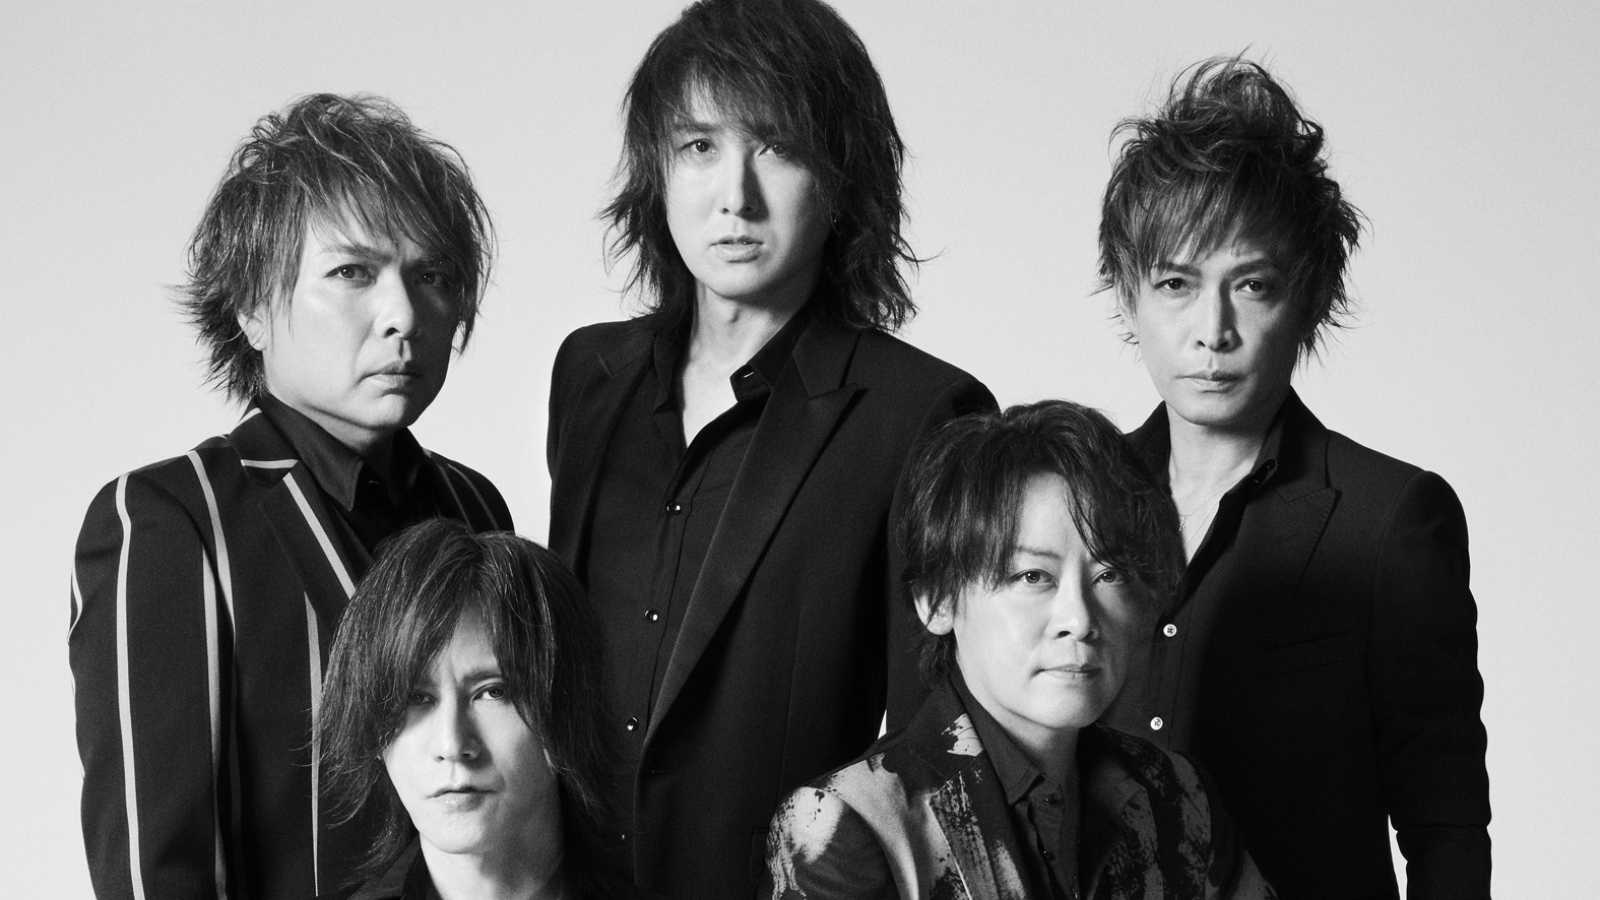 LUNA SEA © LUNA SEA. All rights reserved.